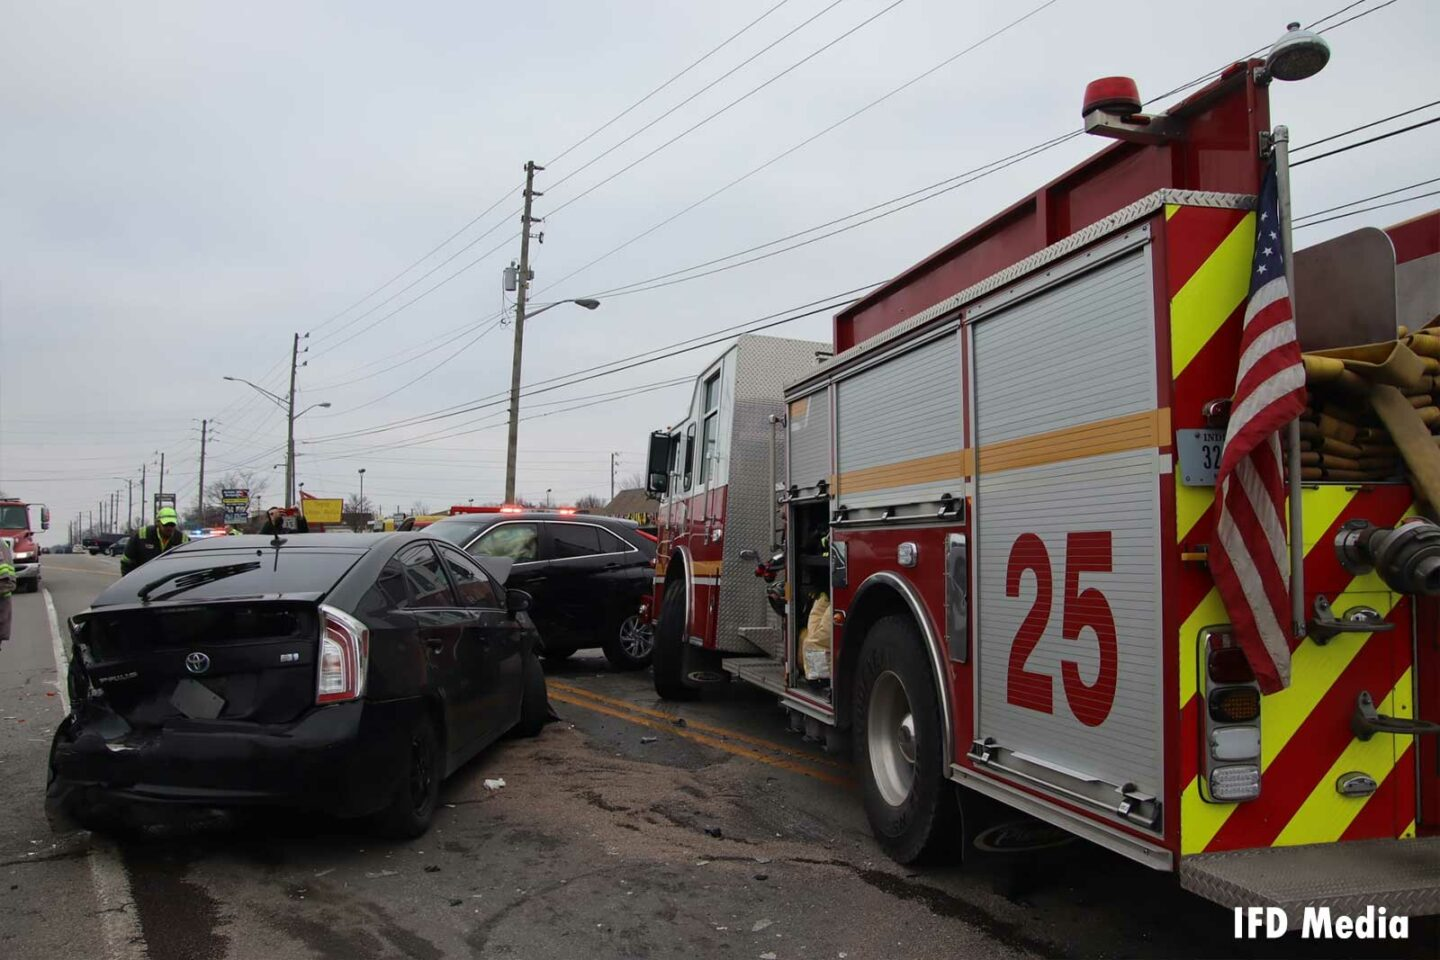 Indianapolis fire truck after collision with two vehicles